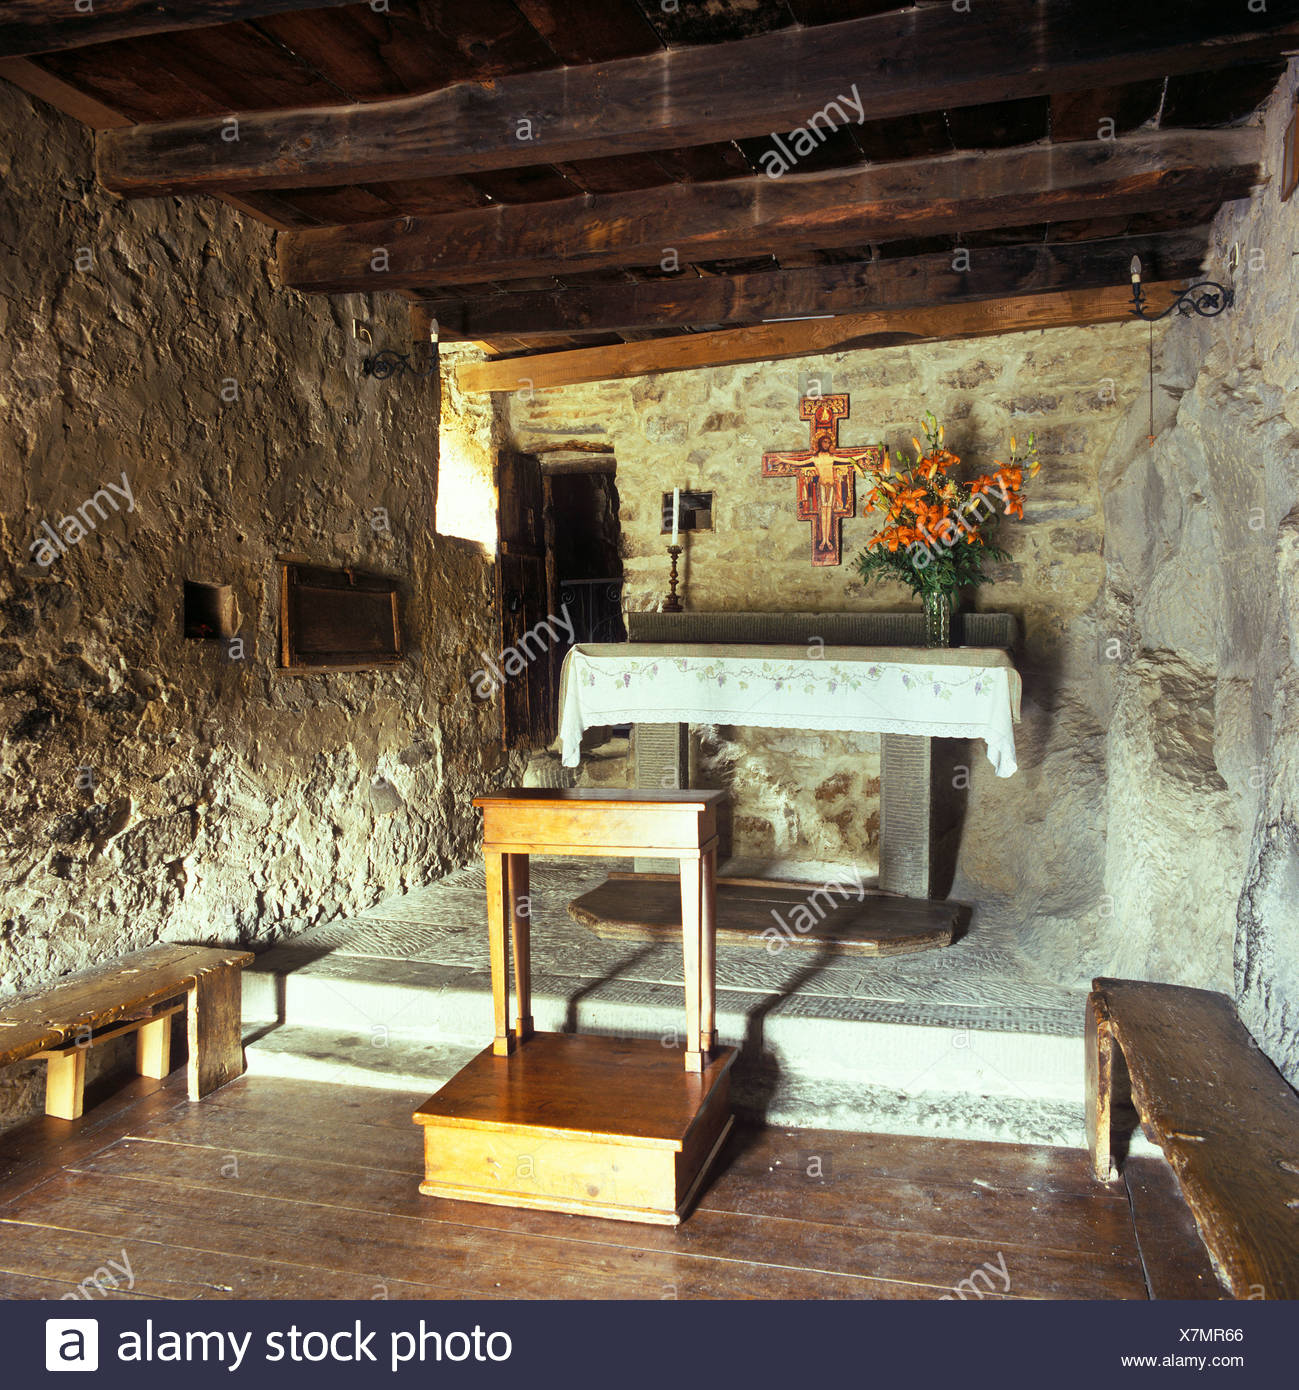 Cell of St Francis, his last resting place before his death, at the Convento delle Celle, a monastery of the order of Friars - Stock Image